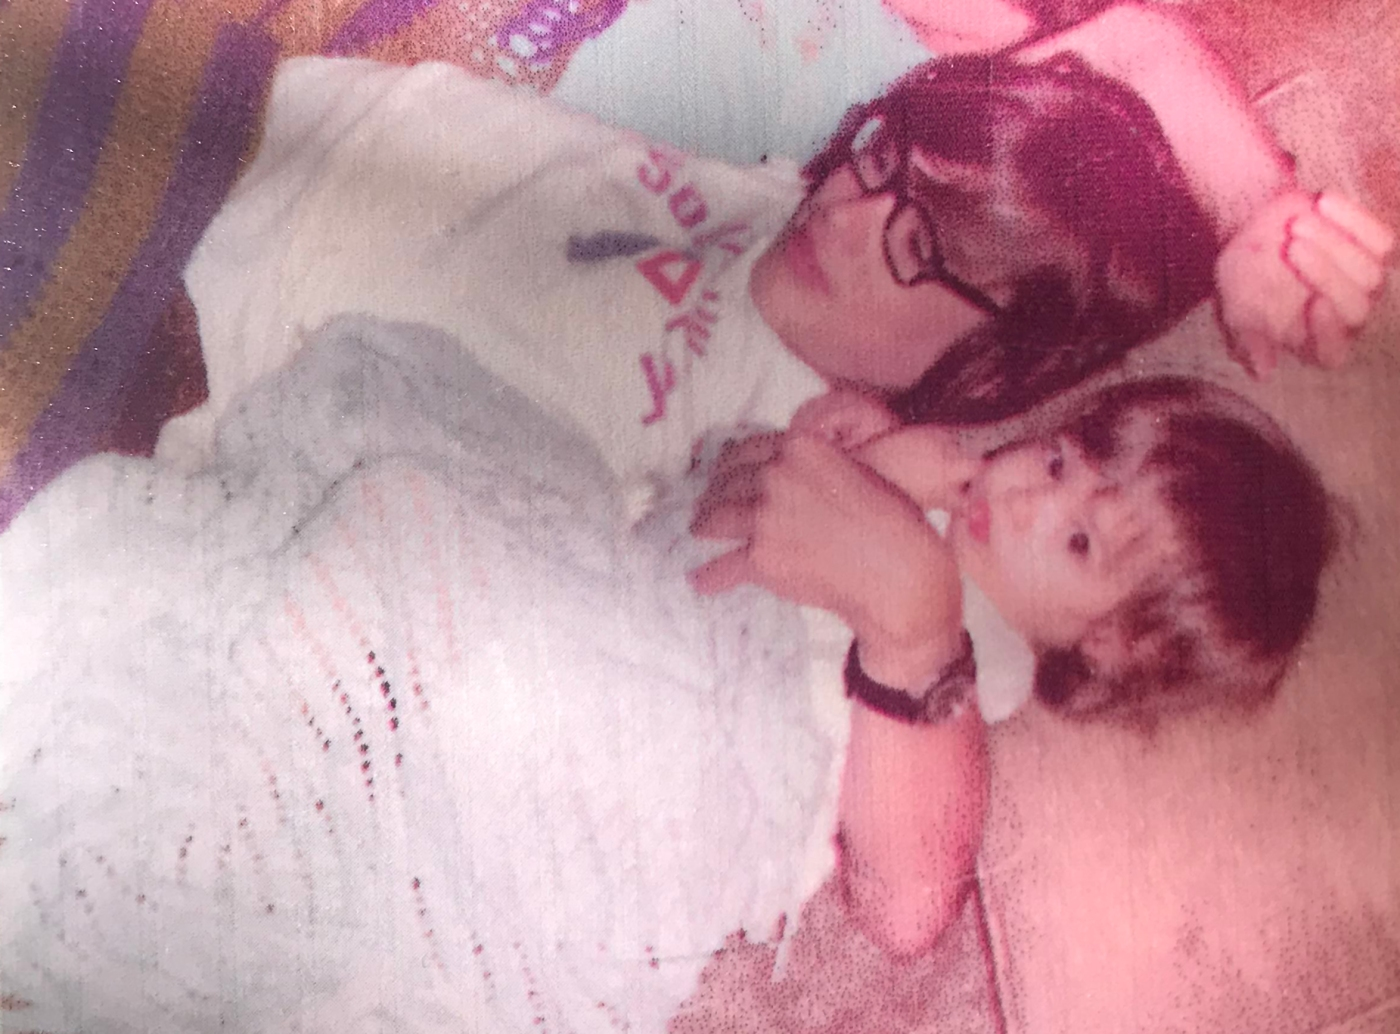 My brother David at about 13 with him arm around me, about one